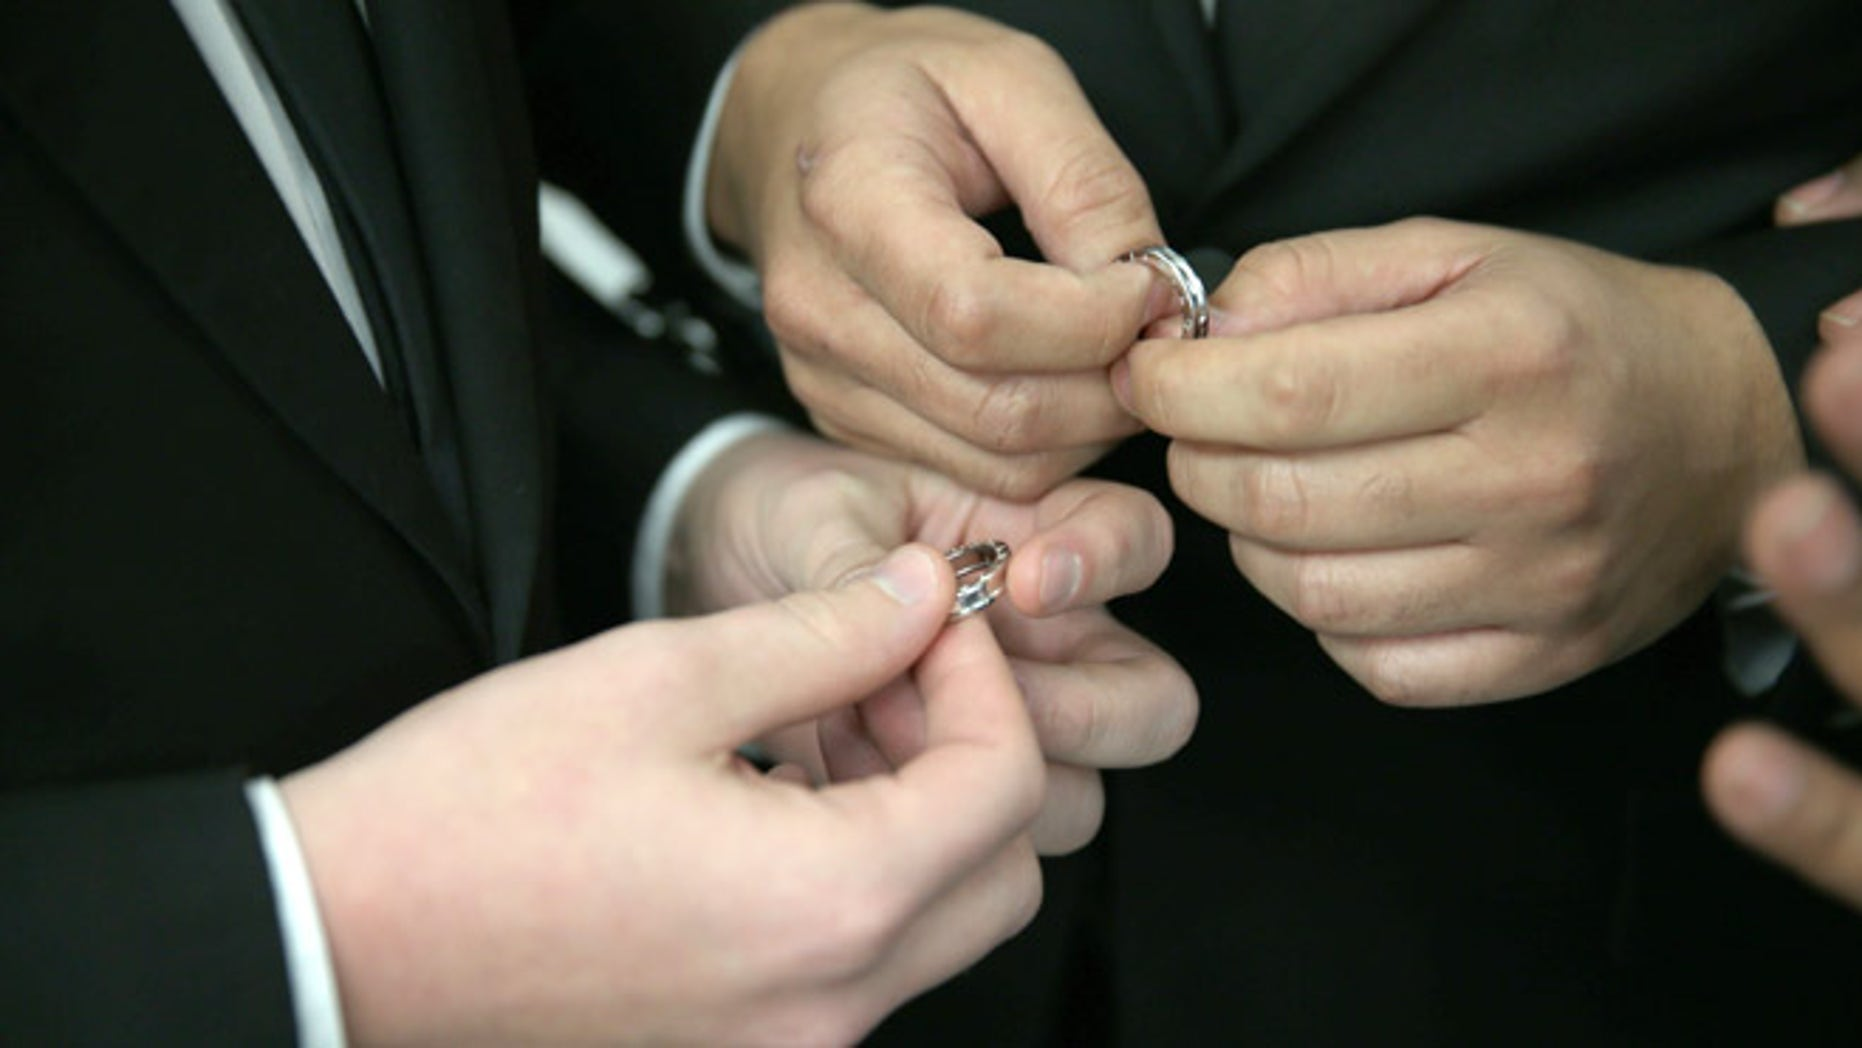 FORT LAUDERDALE, FL - JANUARY 06:  A couple exchange rings as they are wed during a wedding ceremony at the Broward County Courthouse on January 6, 2015 in Fort Lauderdale, Florida. Gay marriage is now legal statewide after the courts ruled that the ban on gay marriage is unconstitutional and the Supreme Court declined to intervene.  (Photo by Joe Raedle/Getty Images)